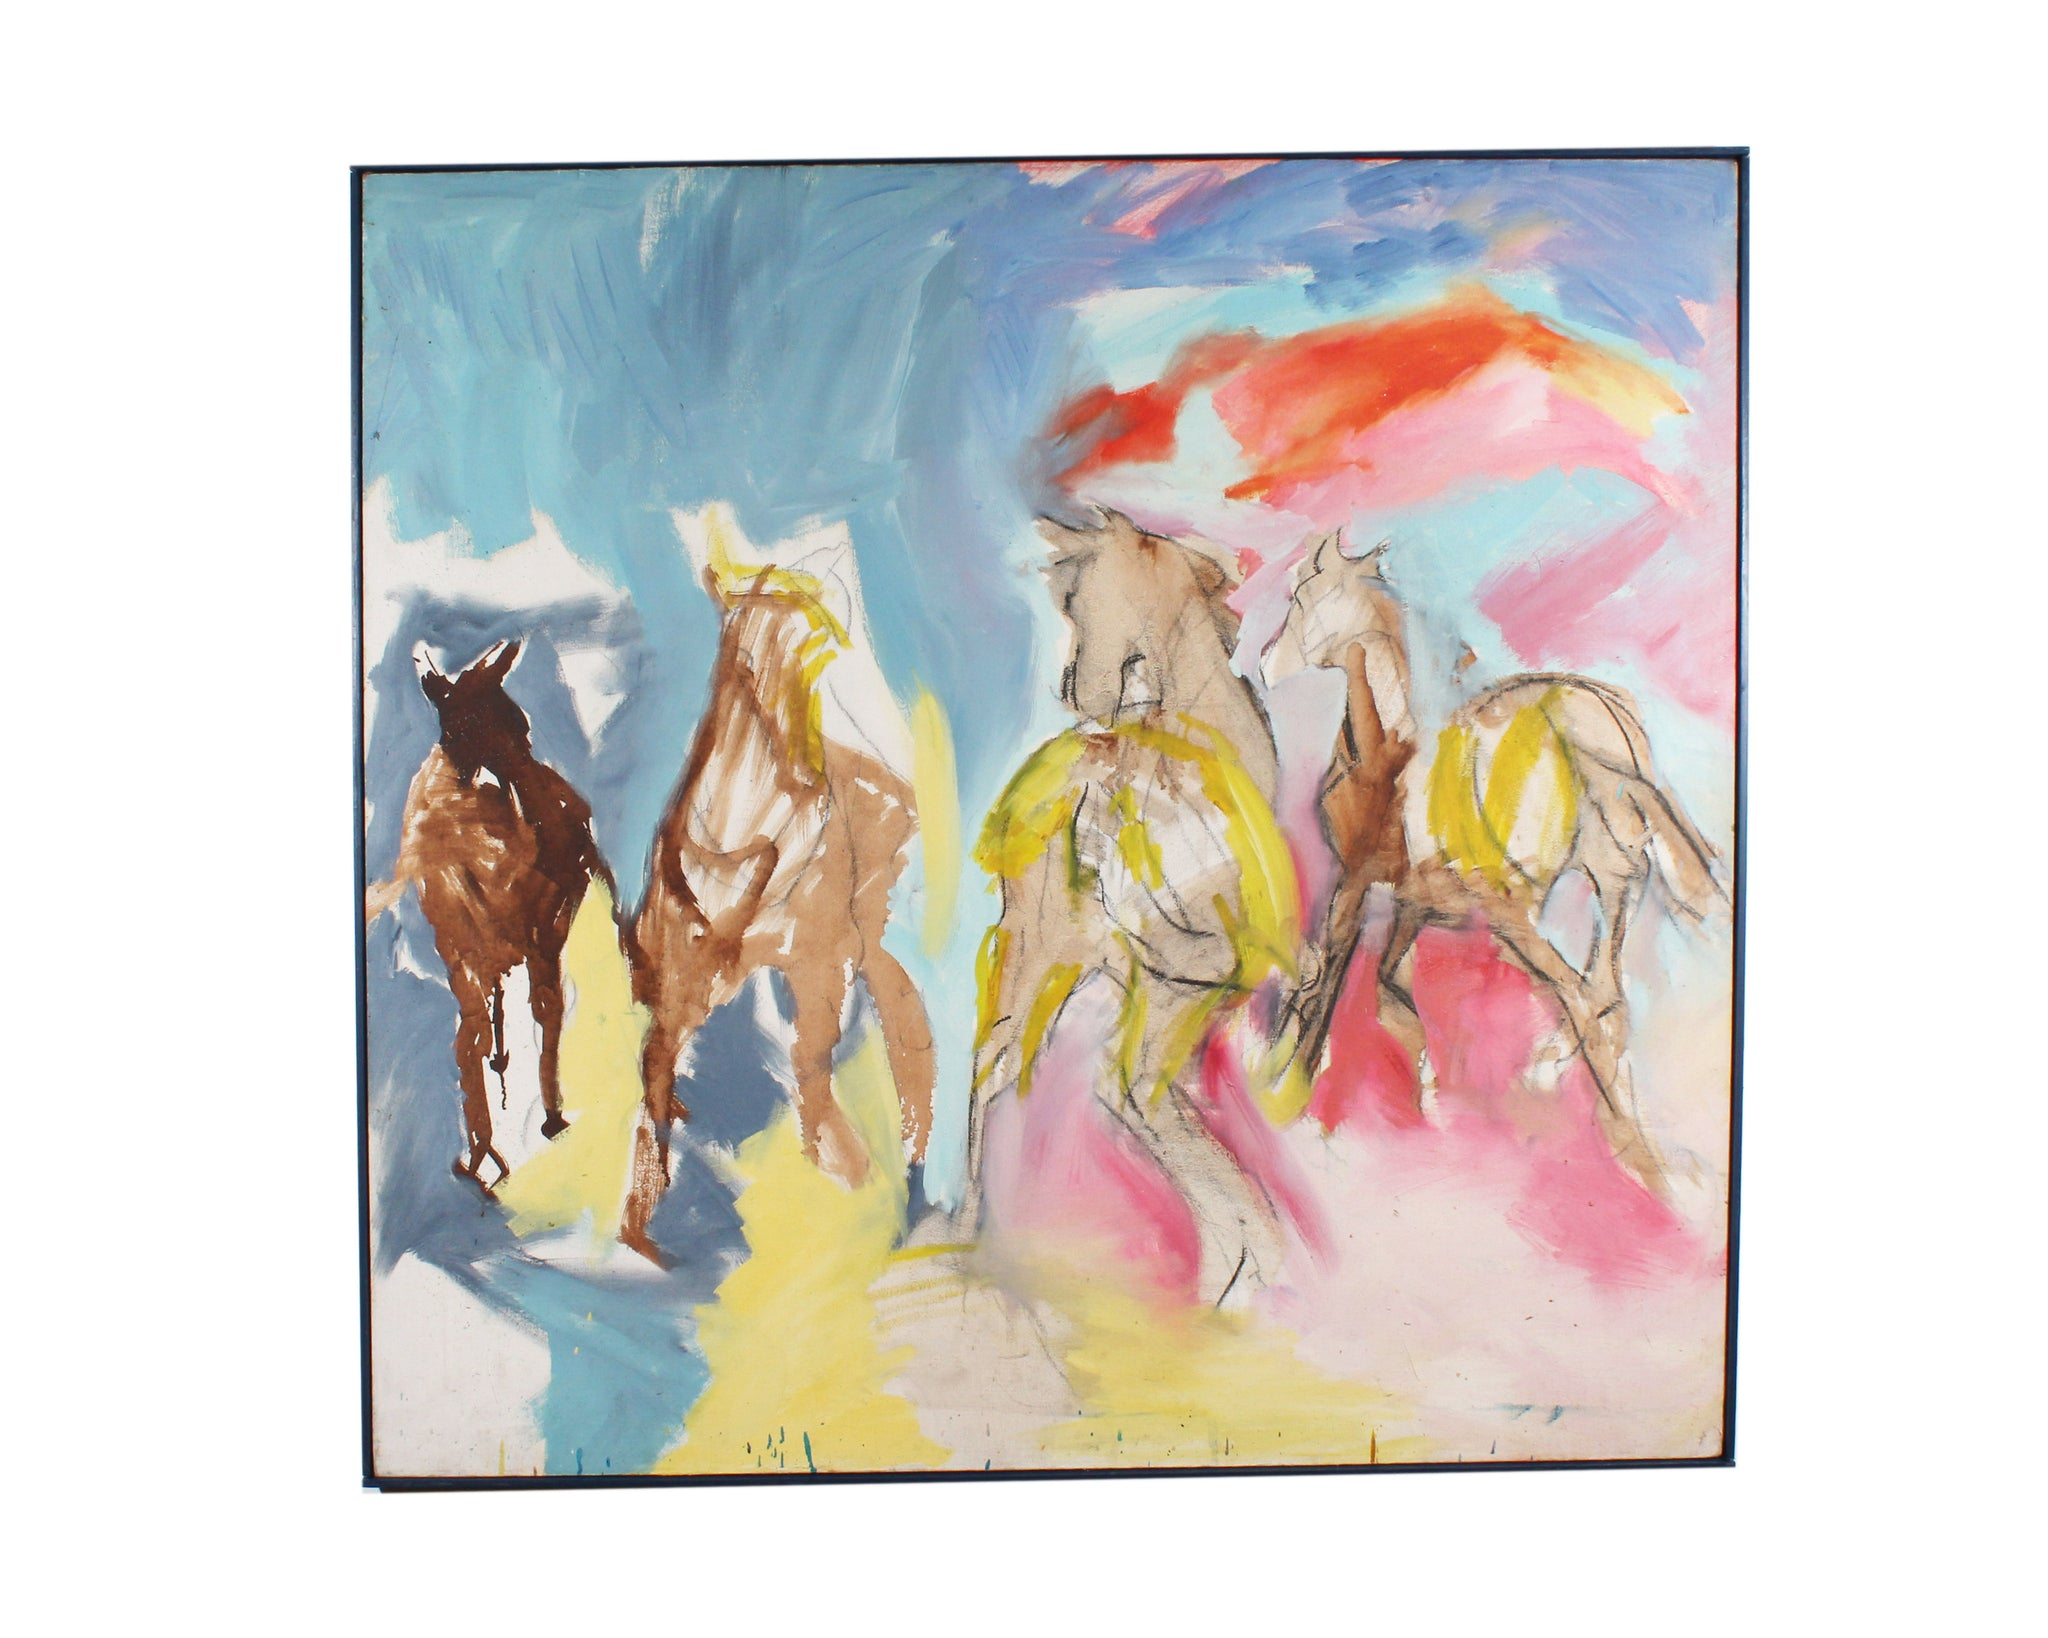 Katharine Sutphin Oil on Canvas Abstract Painting of Horses